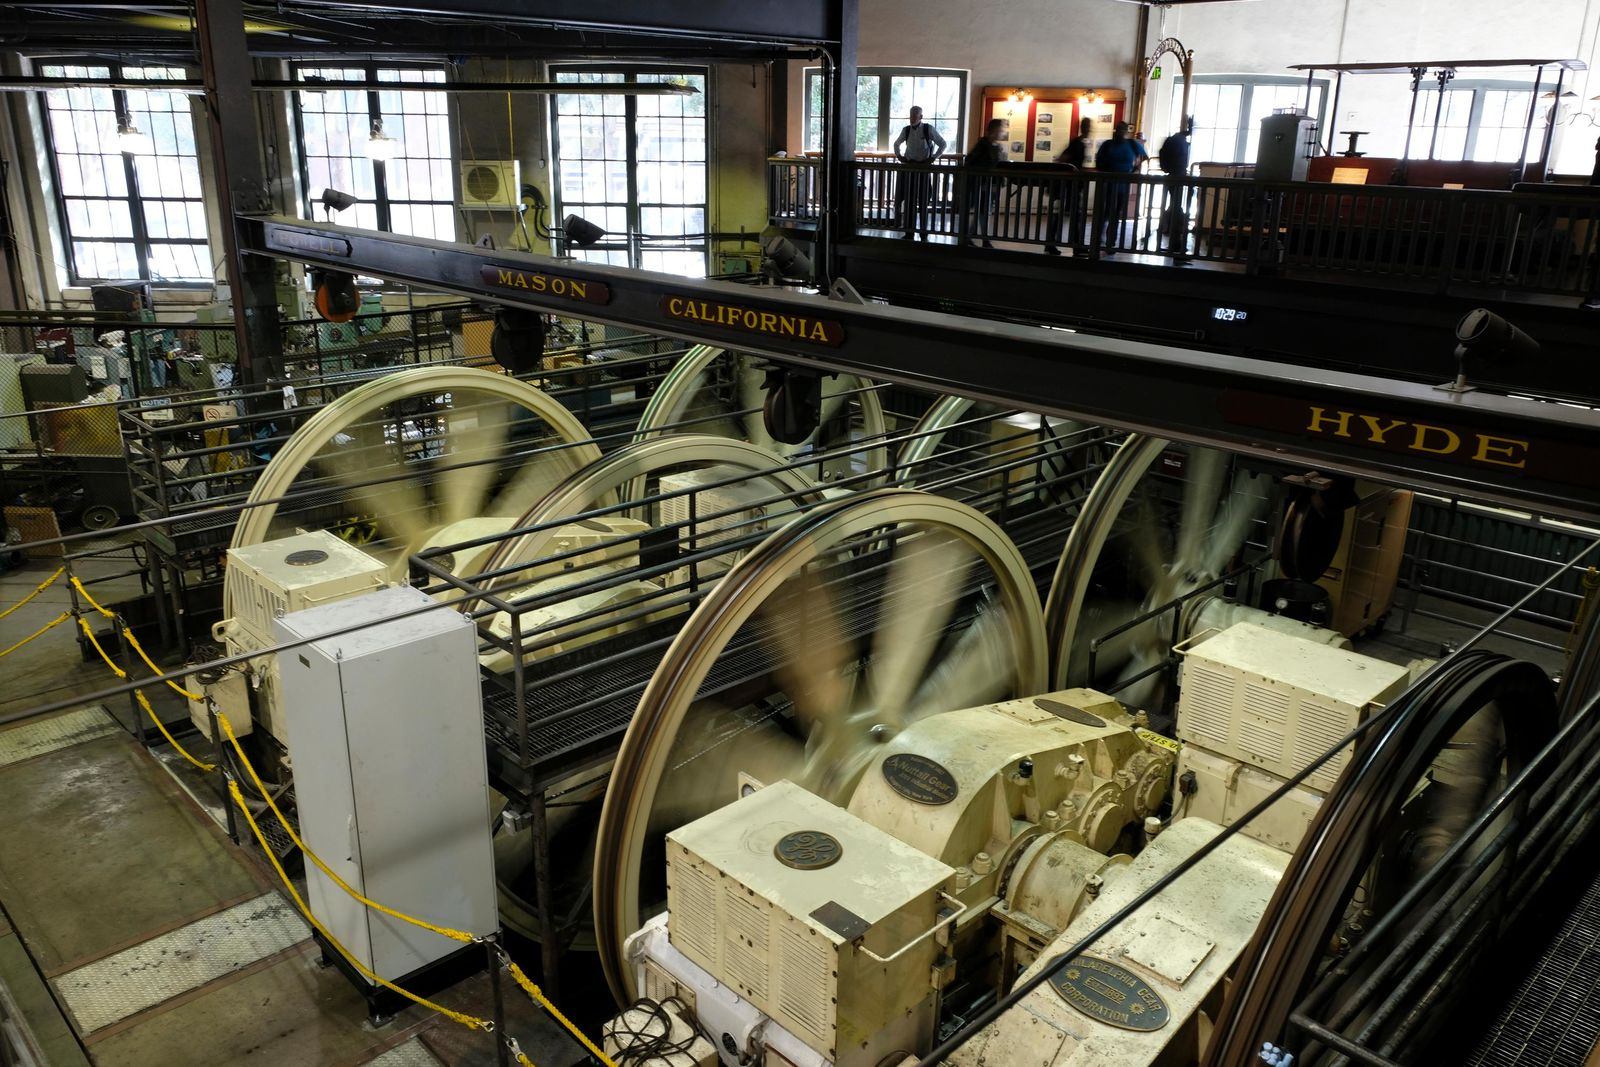 People stand above turning sheaves and gearboxes inside the cable car powerhouse Wednesday, Sept. 11, 2019, in San Francisco. (AP Photo/Eric Risberg)